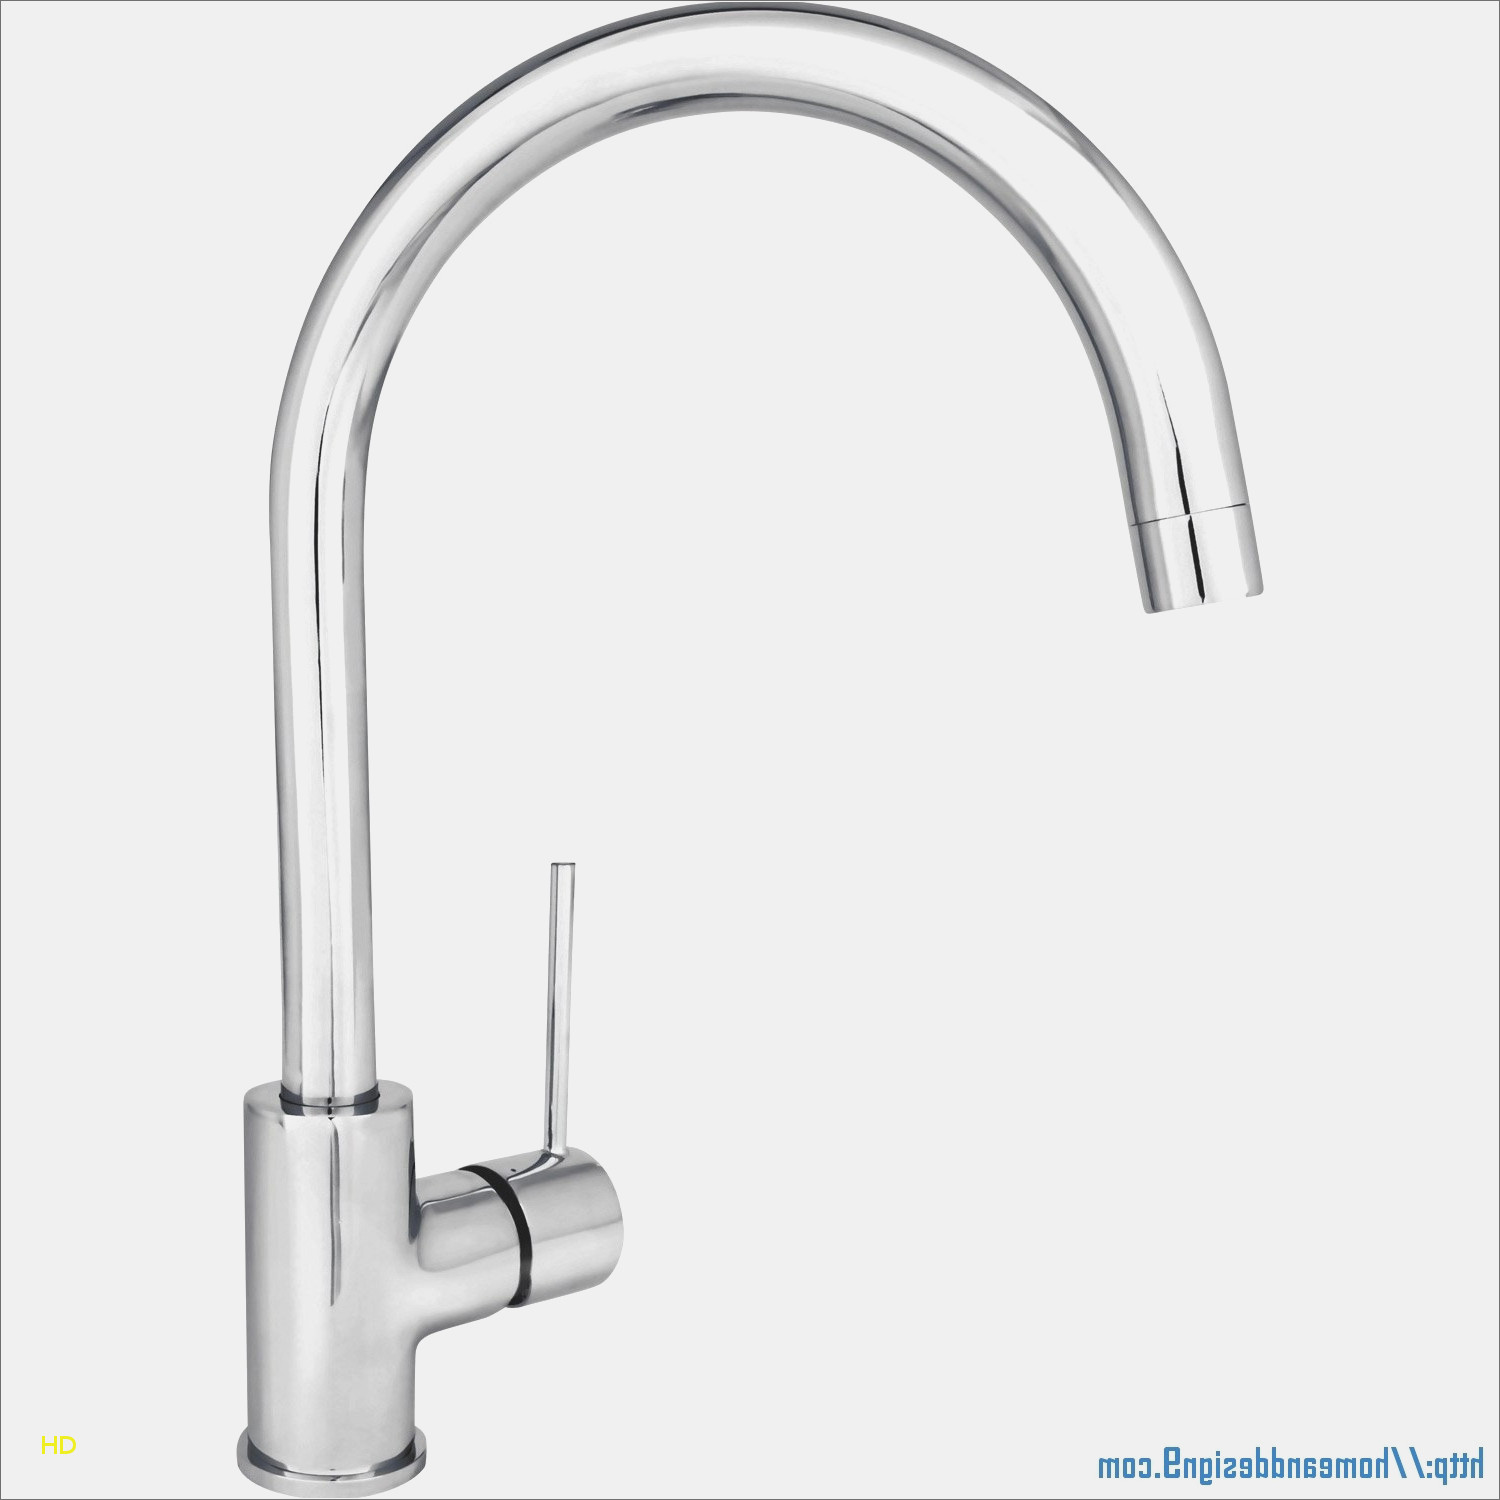 robinet hansgrohe pas cher